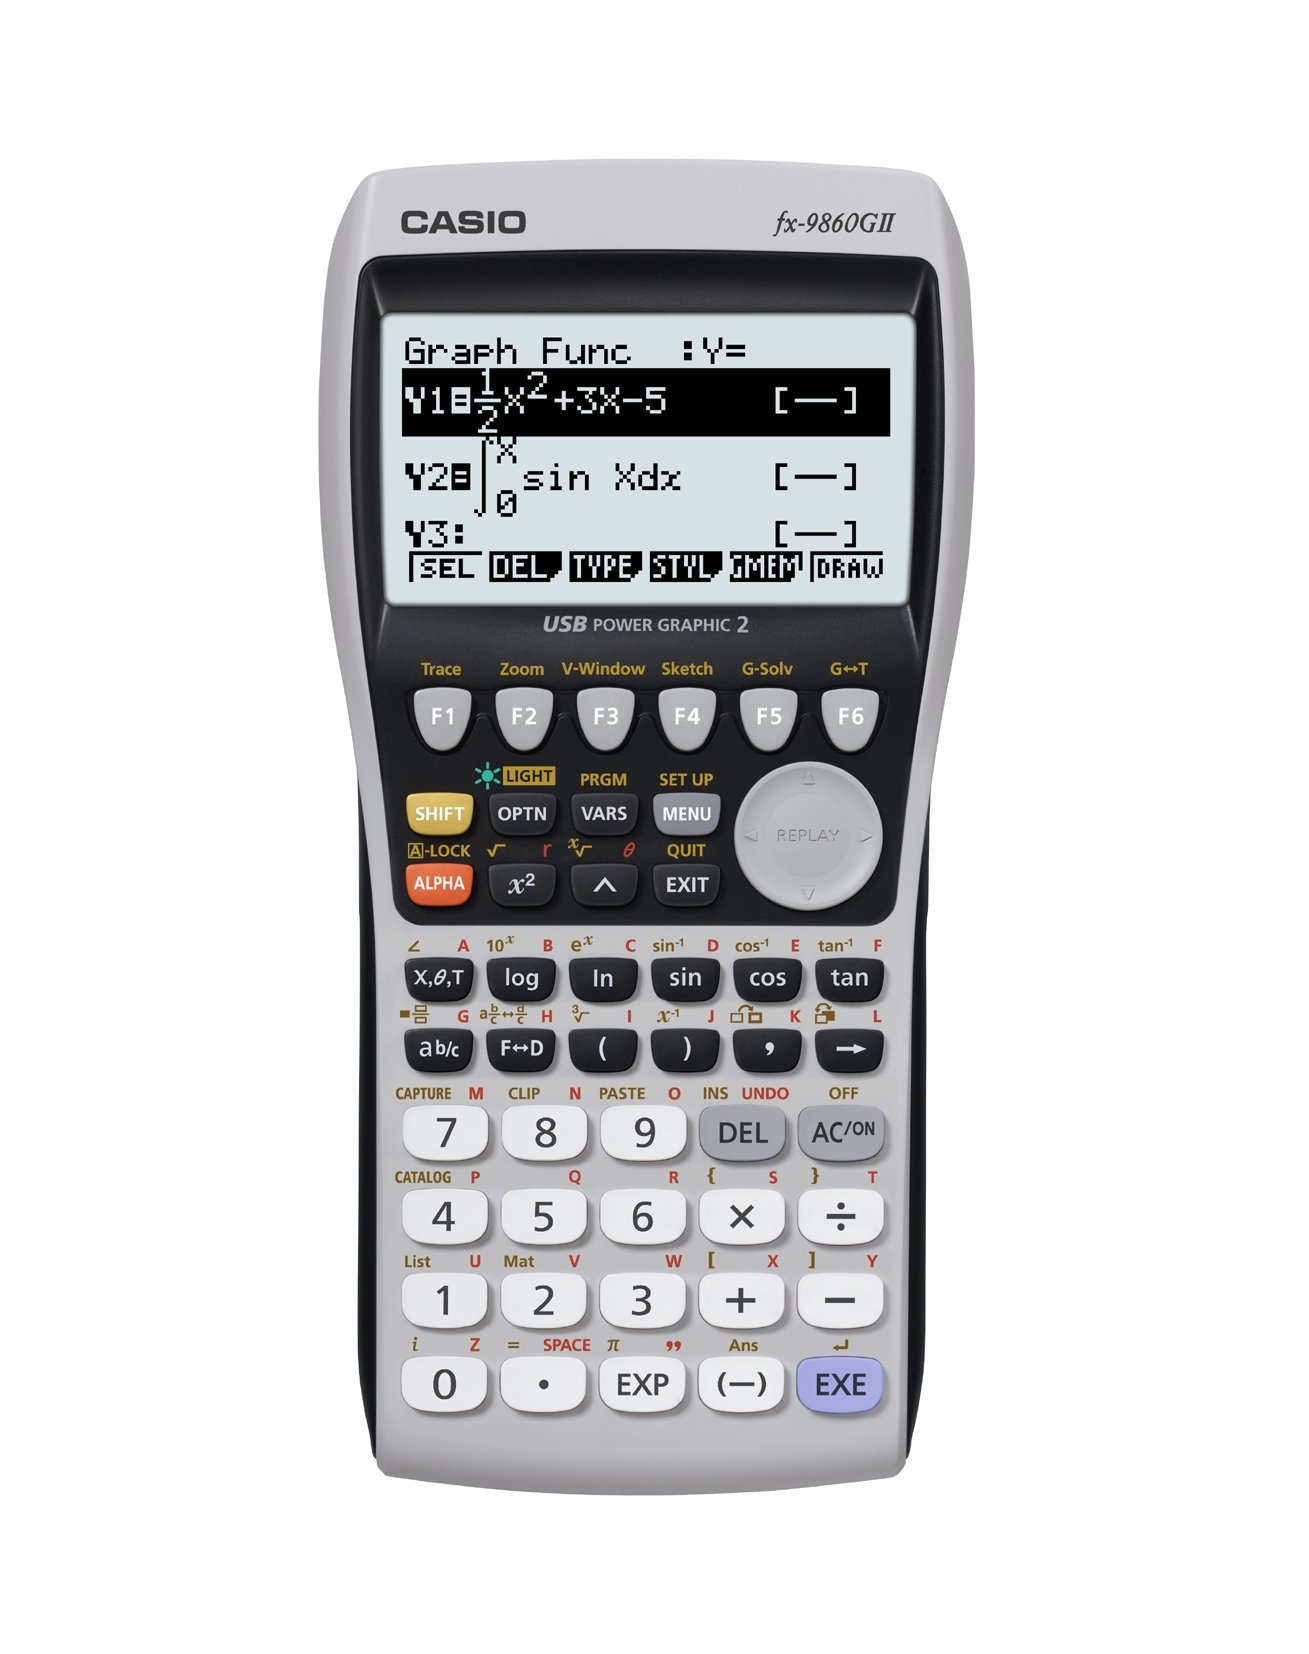 Casio Fx9860 Fx-9860gii USB Power Graphic Scientific Calculator High Resolution Backlit Display Screen 64kb RAM Grey and Black Color Limited Edition.